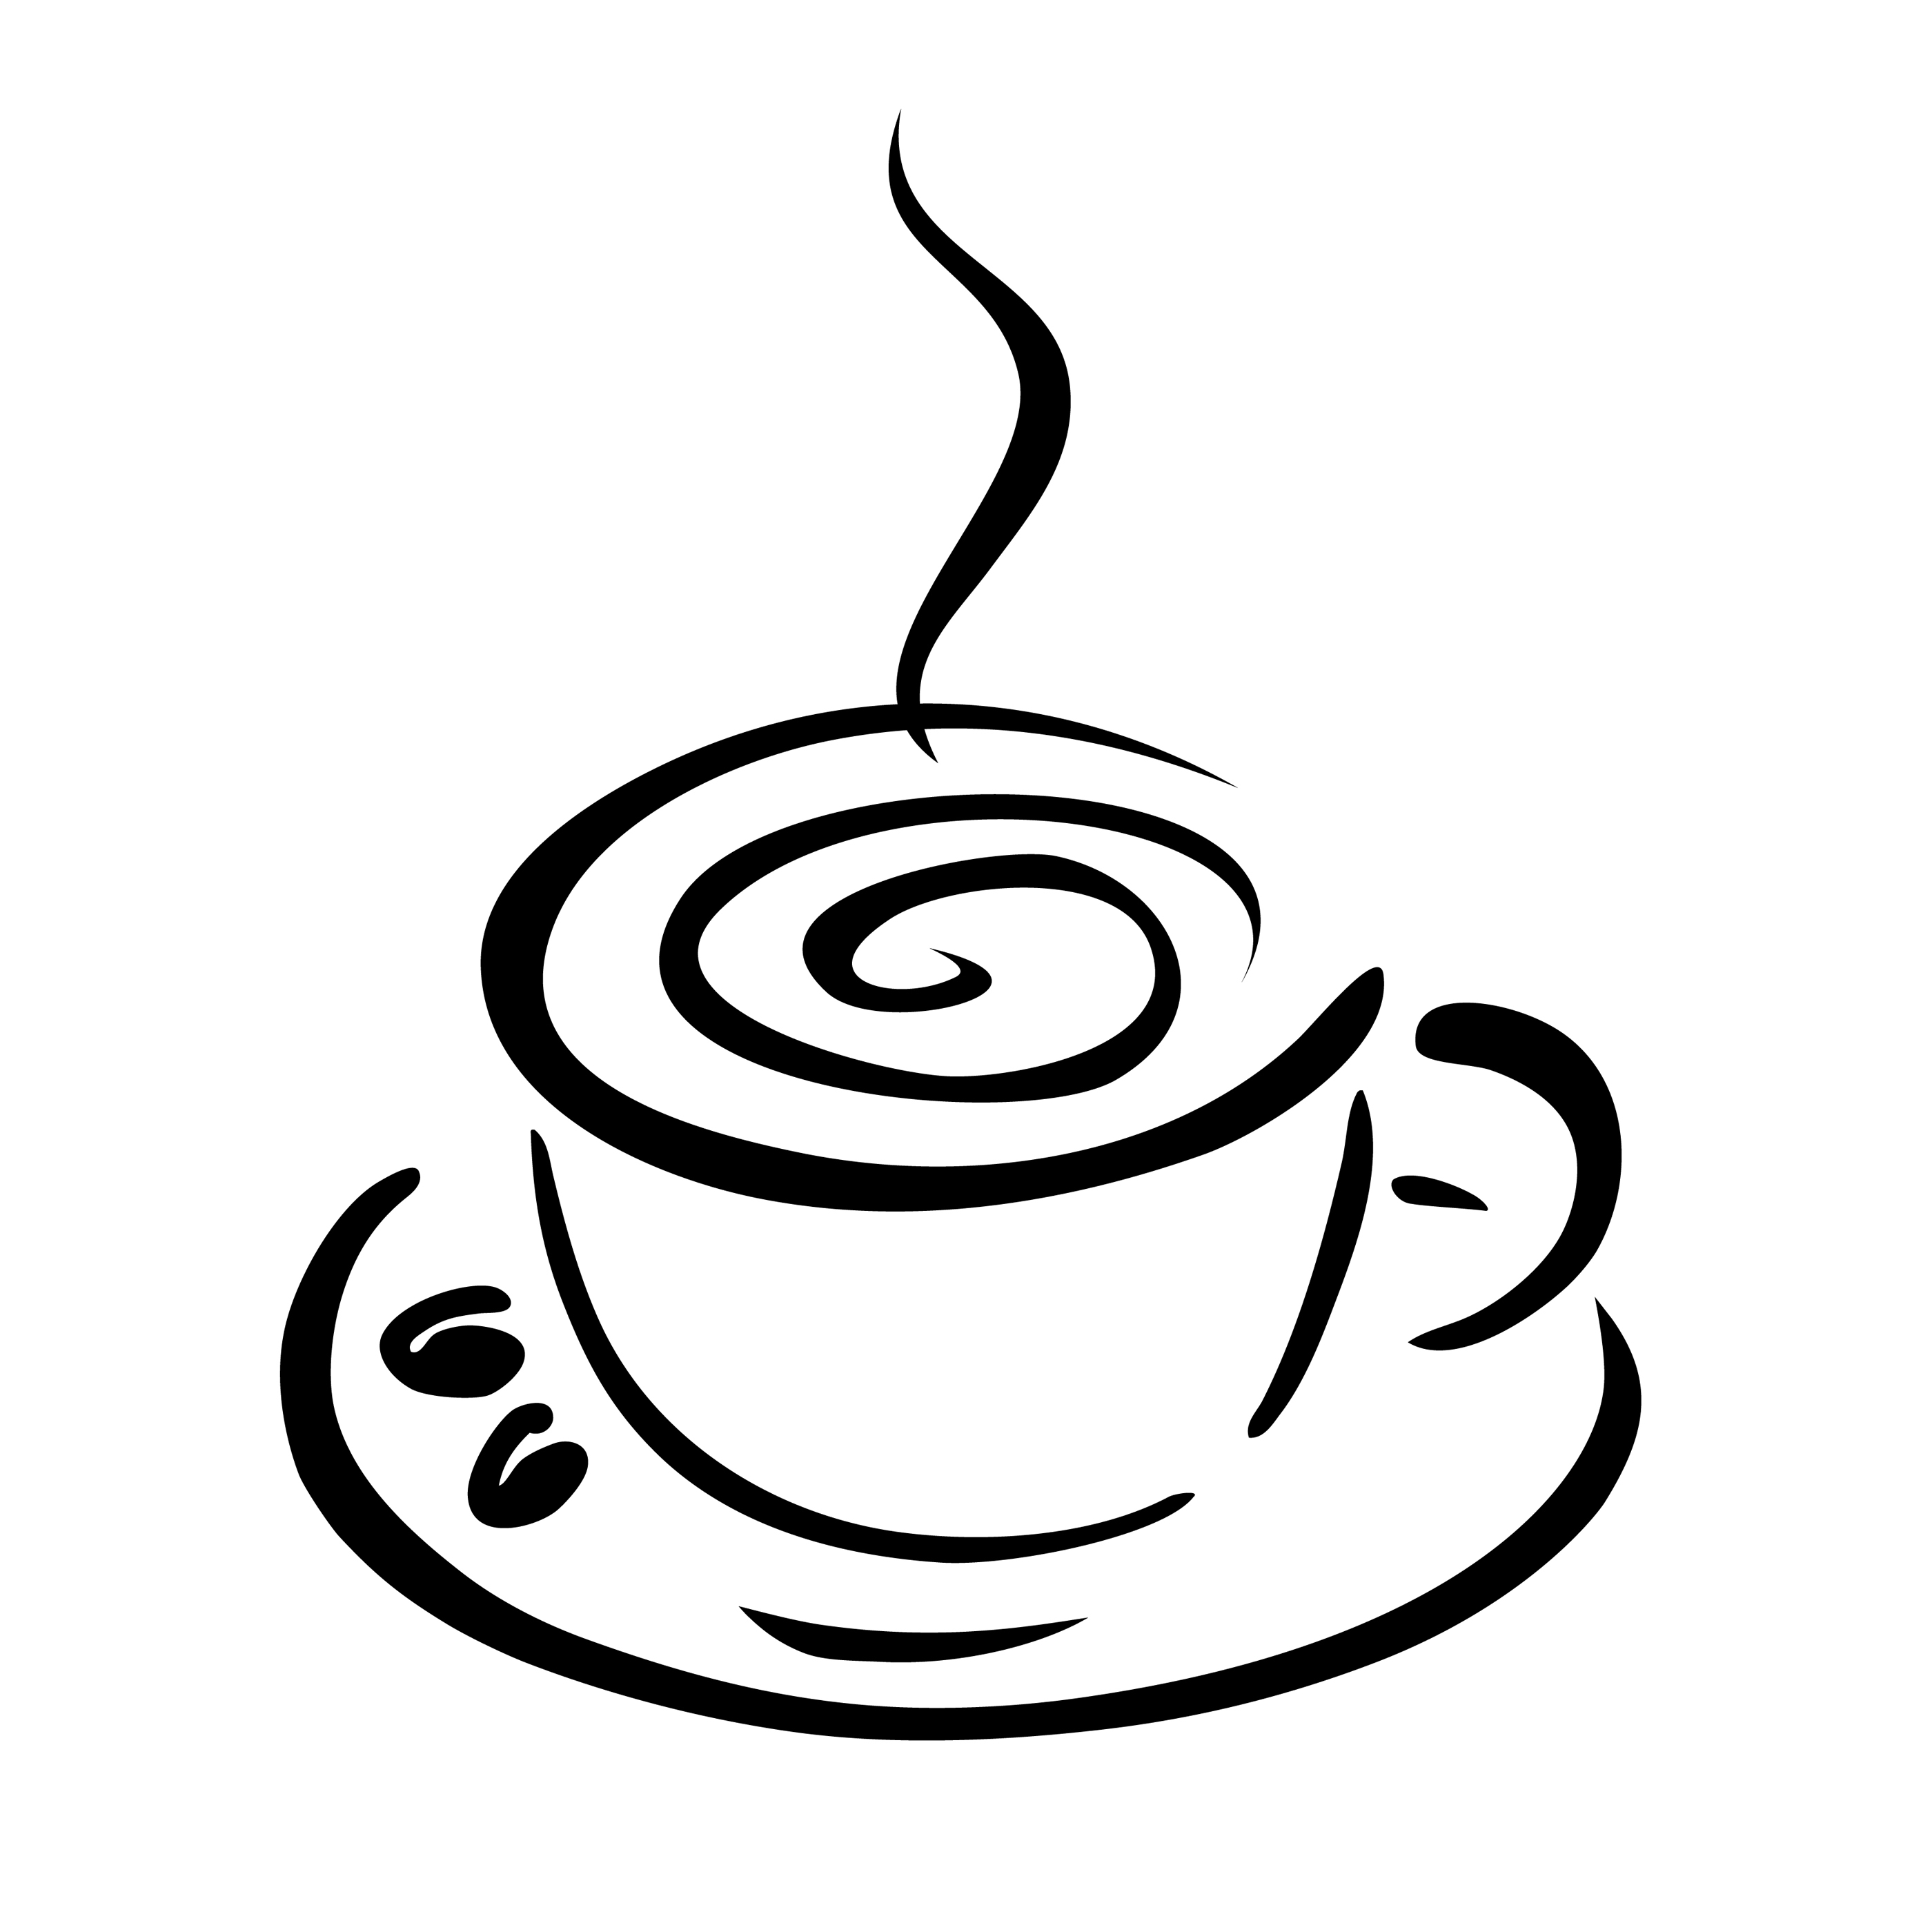 2800x2800 Drawn Coffee Silhouette Png Many Interesting Cliparts